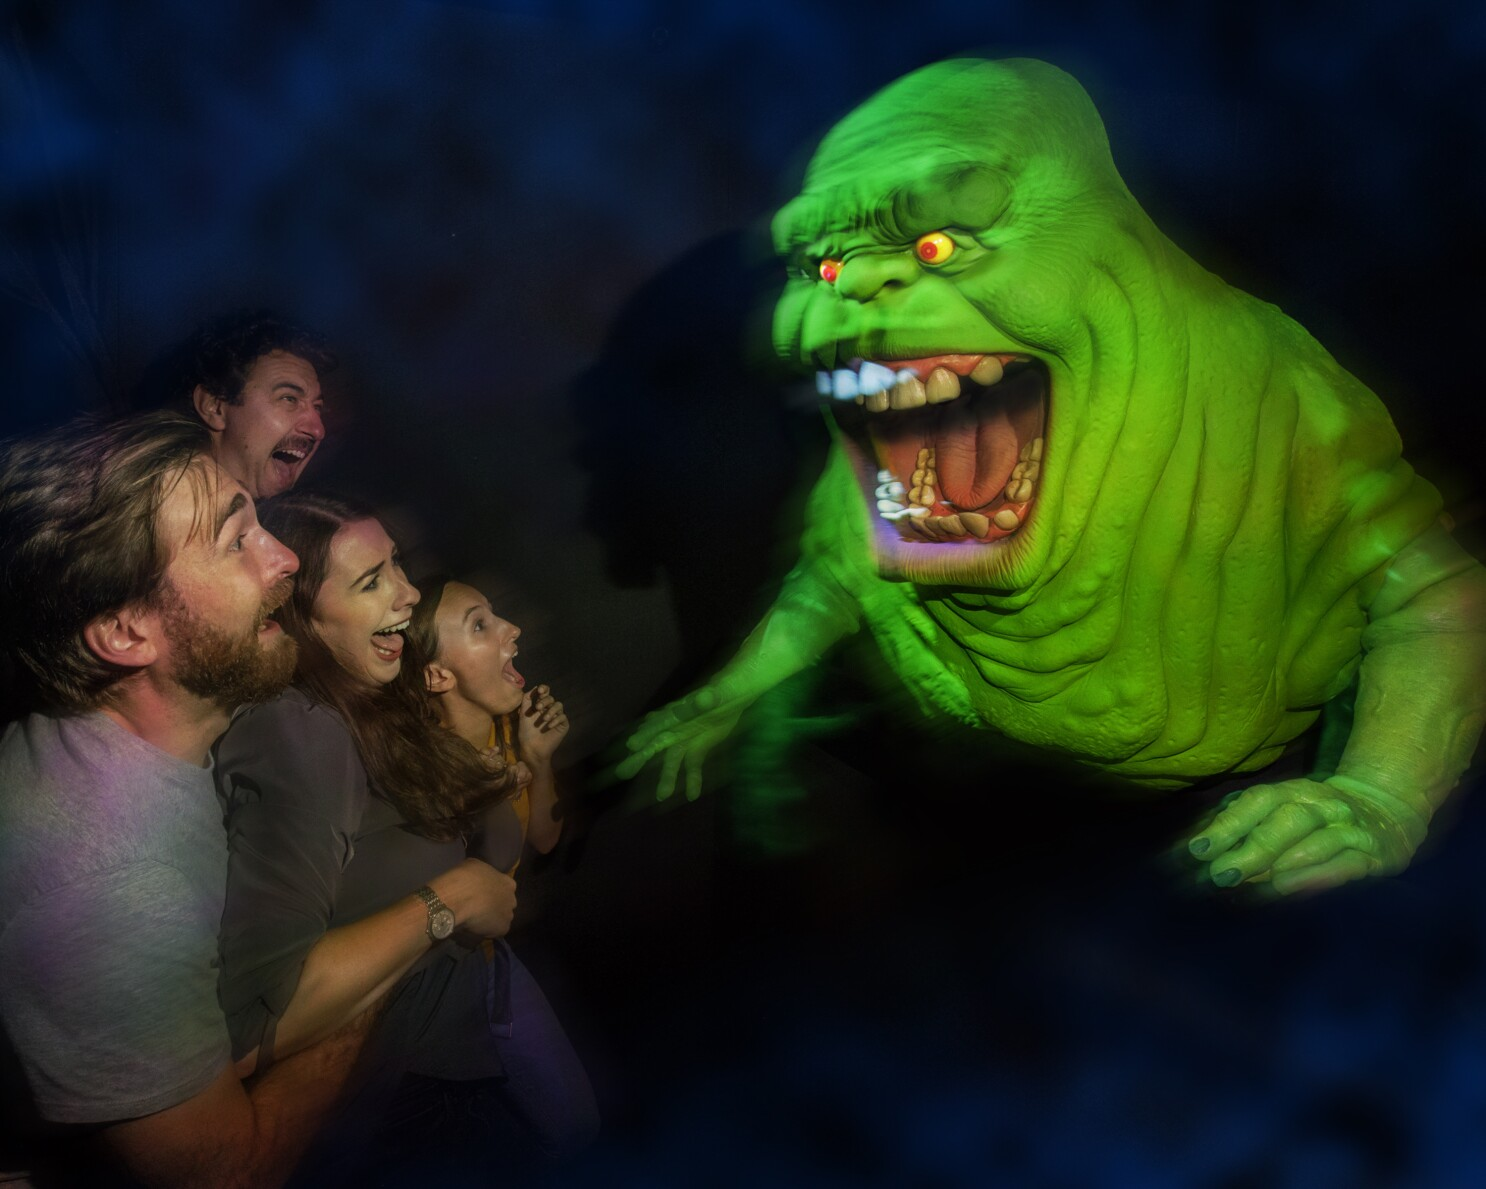 Los Angeles Best Halloween Horror Nights Houses 2020 Halloween Horror Nights canceled at Universal due to COVID 19